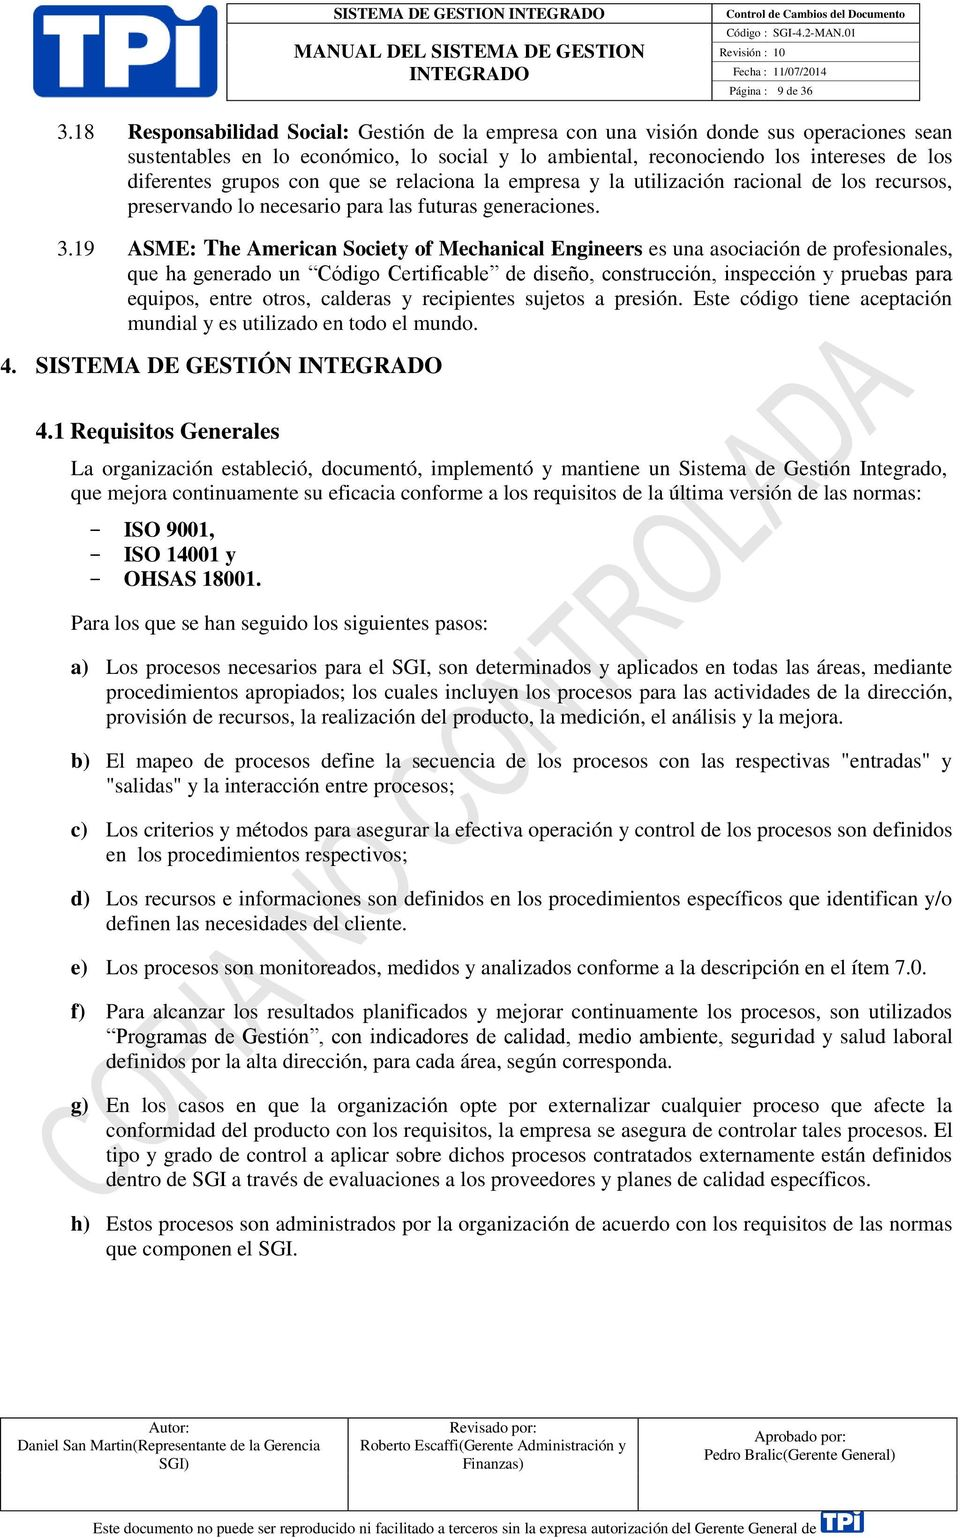 Manual del sistema de gesti n integrado sgi 4 2 pdf for Manual de diseno y construccion de albercas pdf